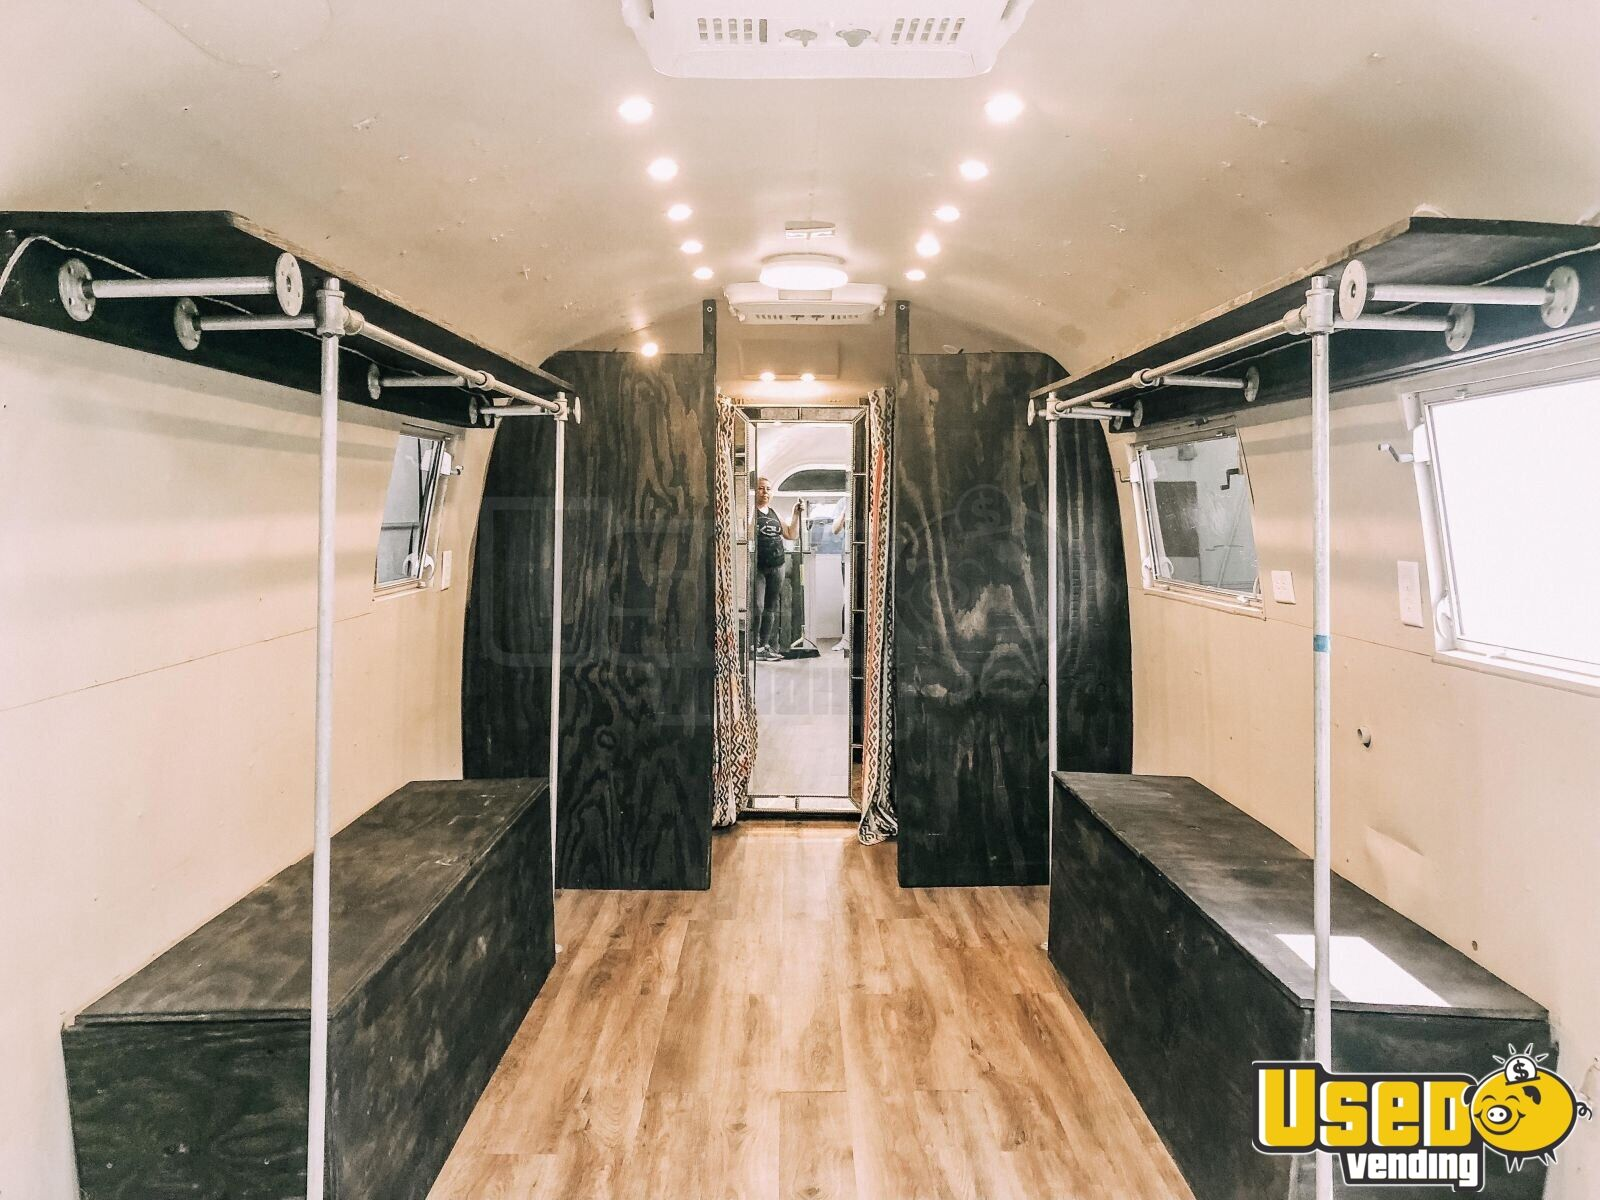 1963 Airstream Overlander Mobile Boutique Trailer Cabinets Florida for Sale - 3